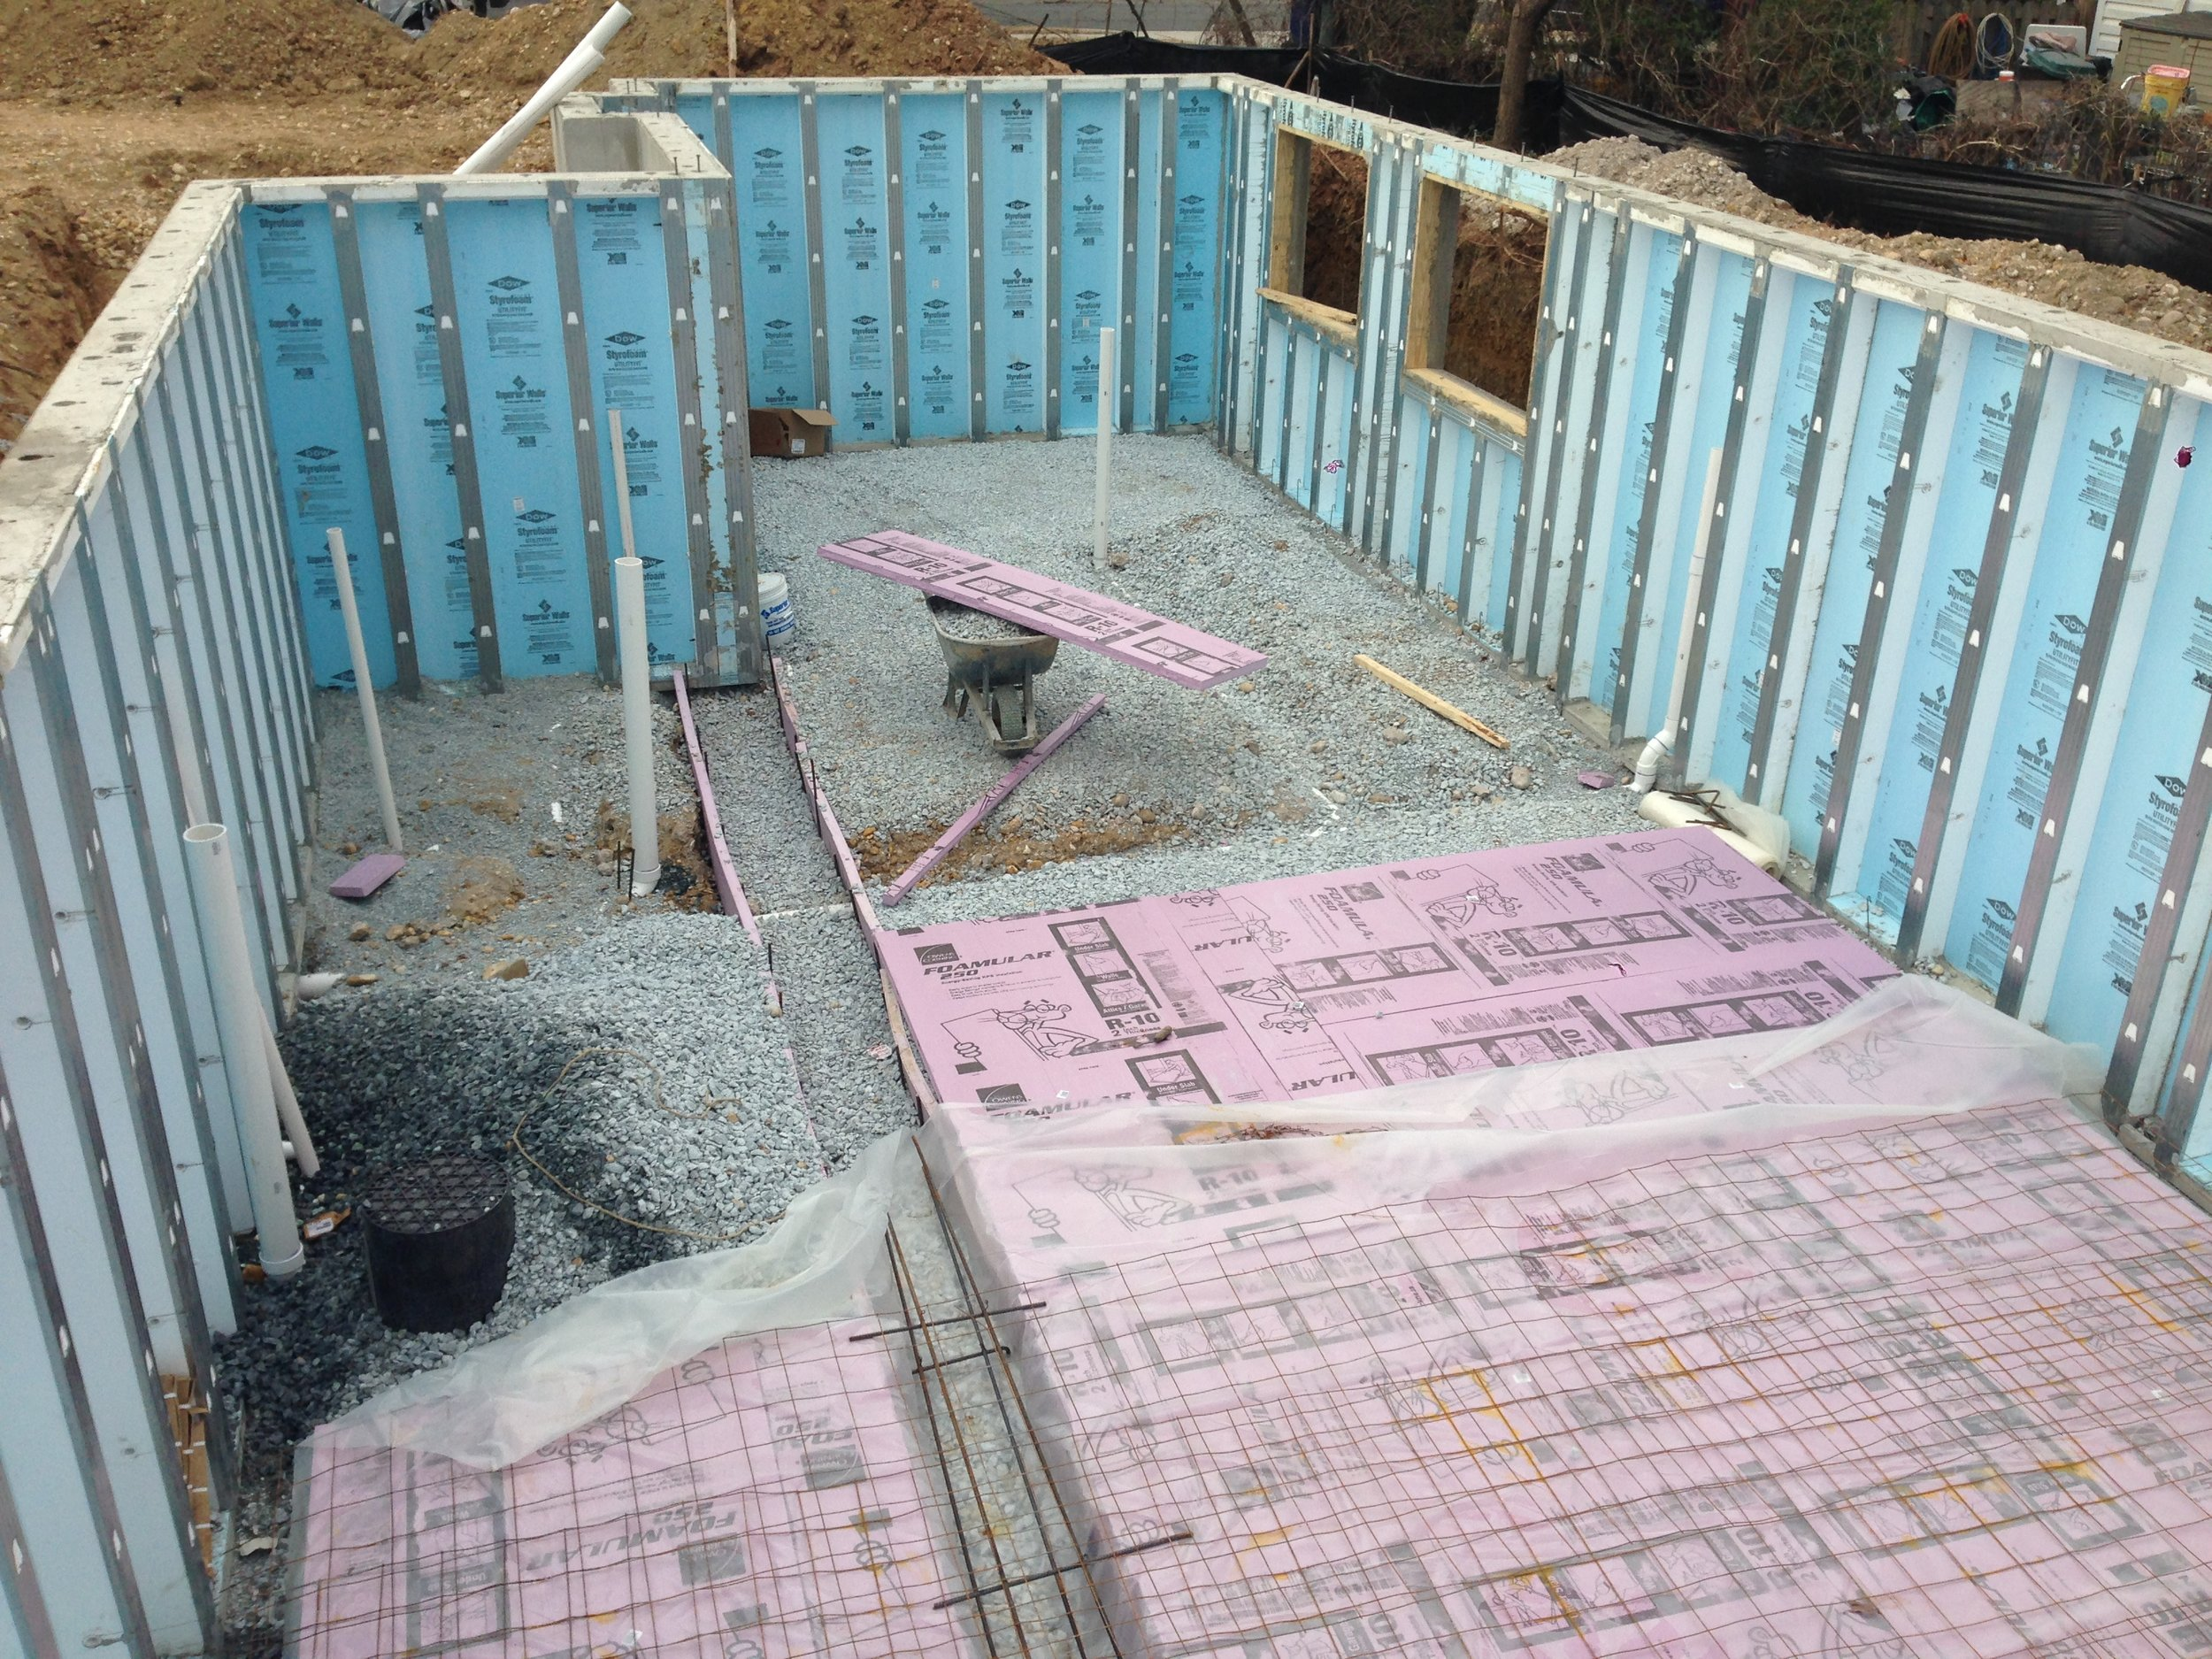 On schedule with the foundation. The pink and blue stuff is rigid insulation that will provide the floor with a nice consistent temperature throughout the year.